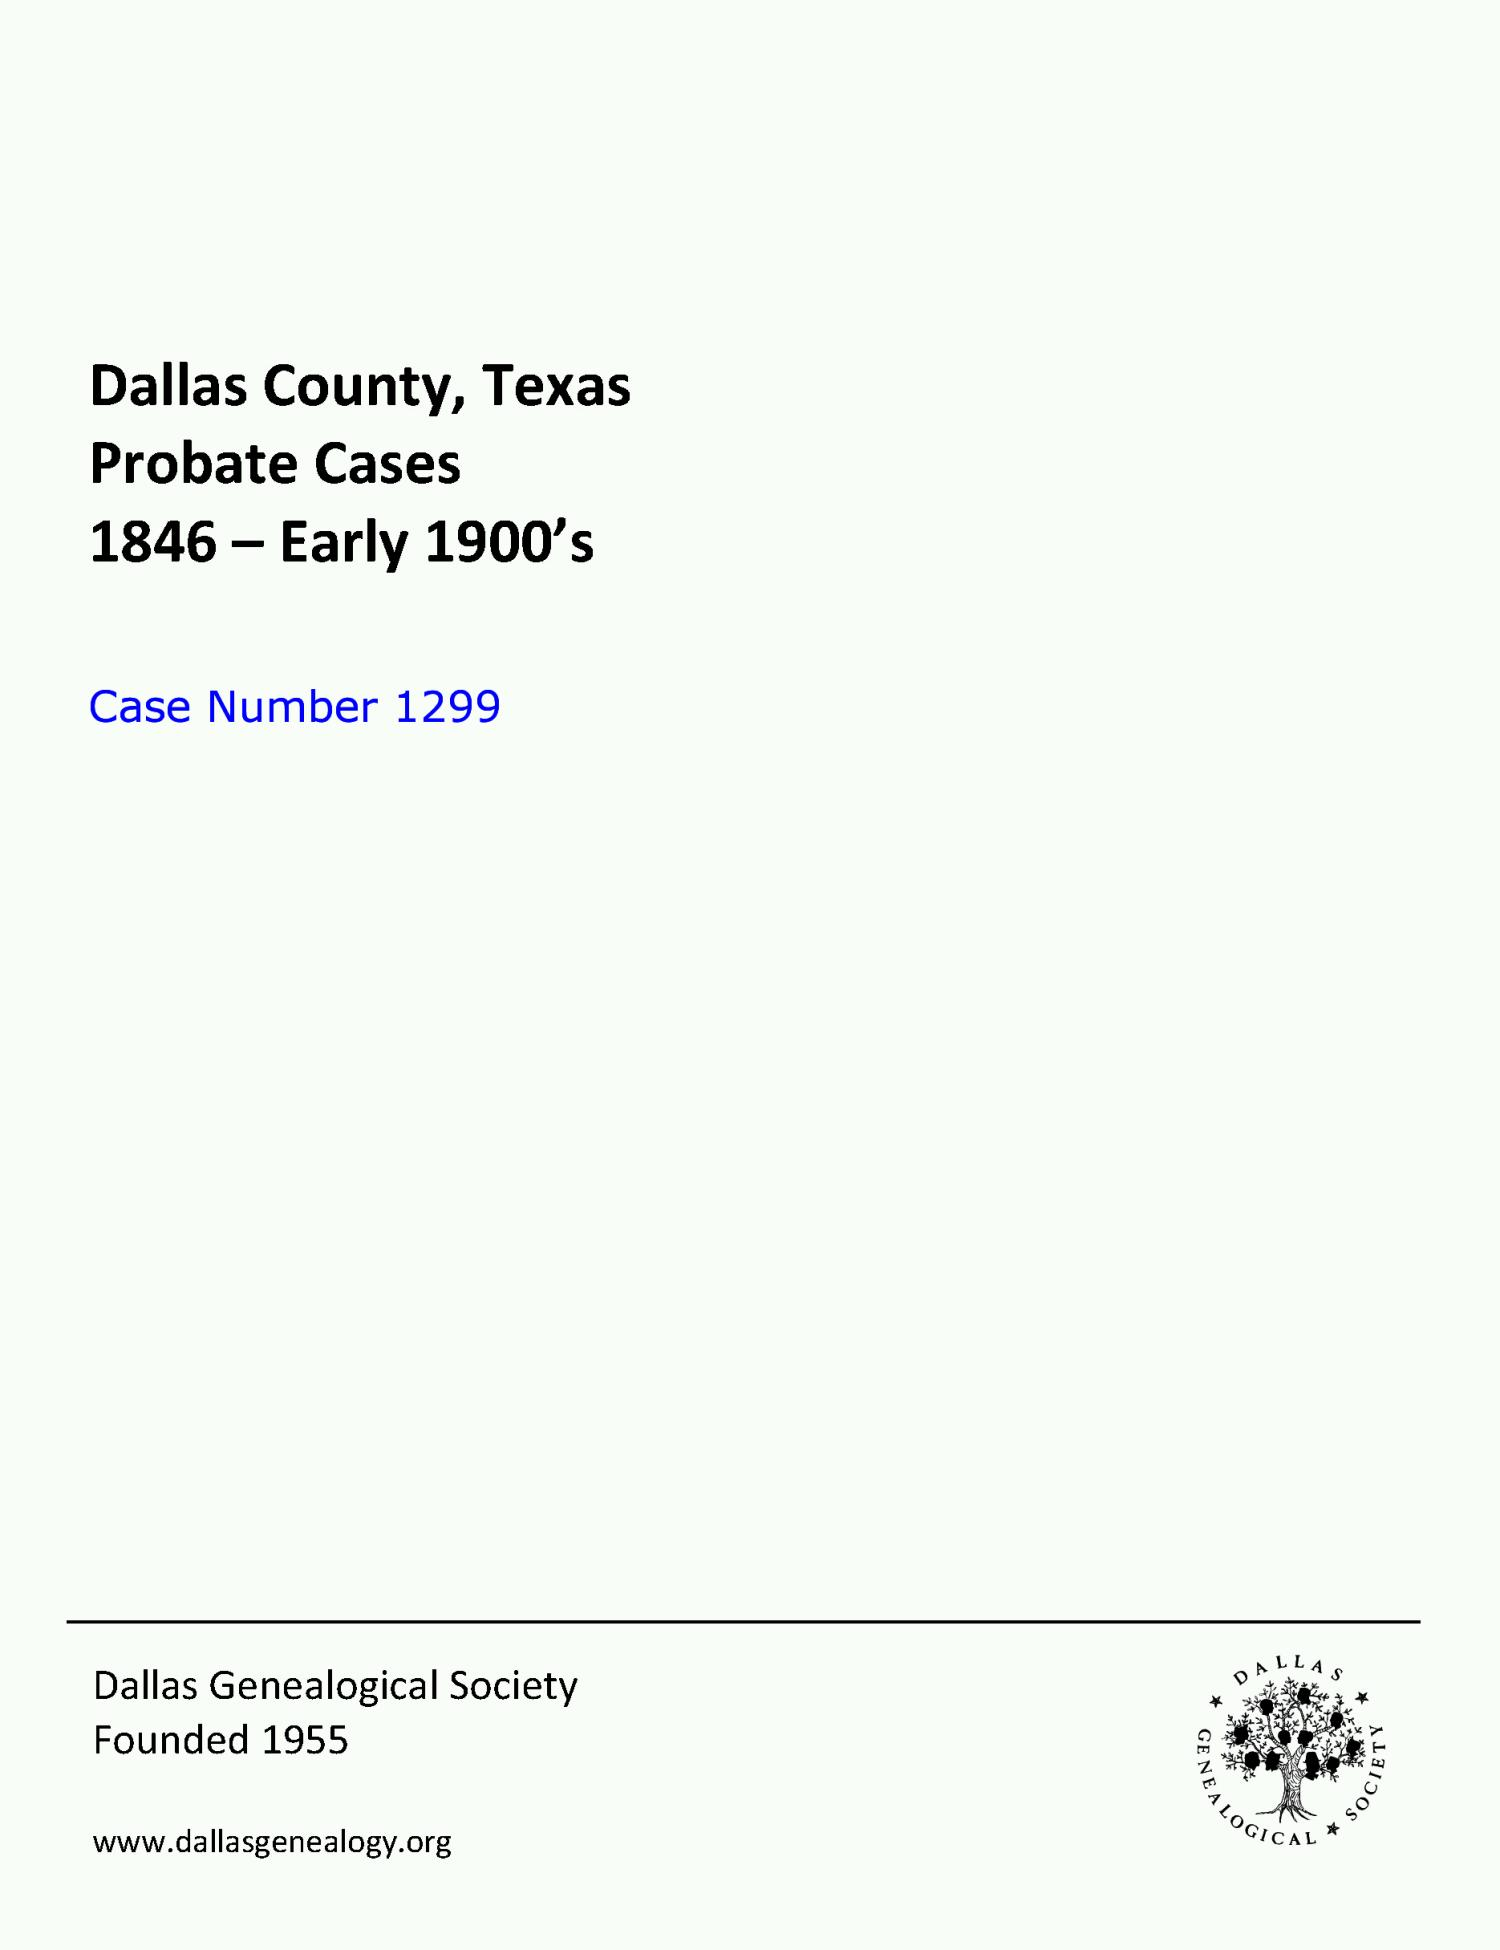 Dallas County Probate Case 1299: Seegar, J.A. (Deceased)                                                                                                      [Sequence #]: 1 of 11